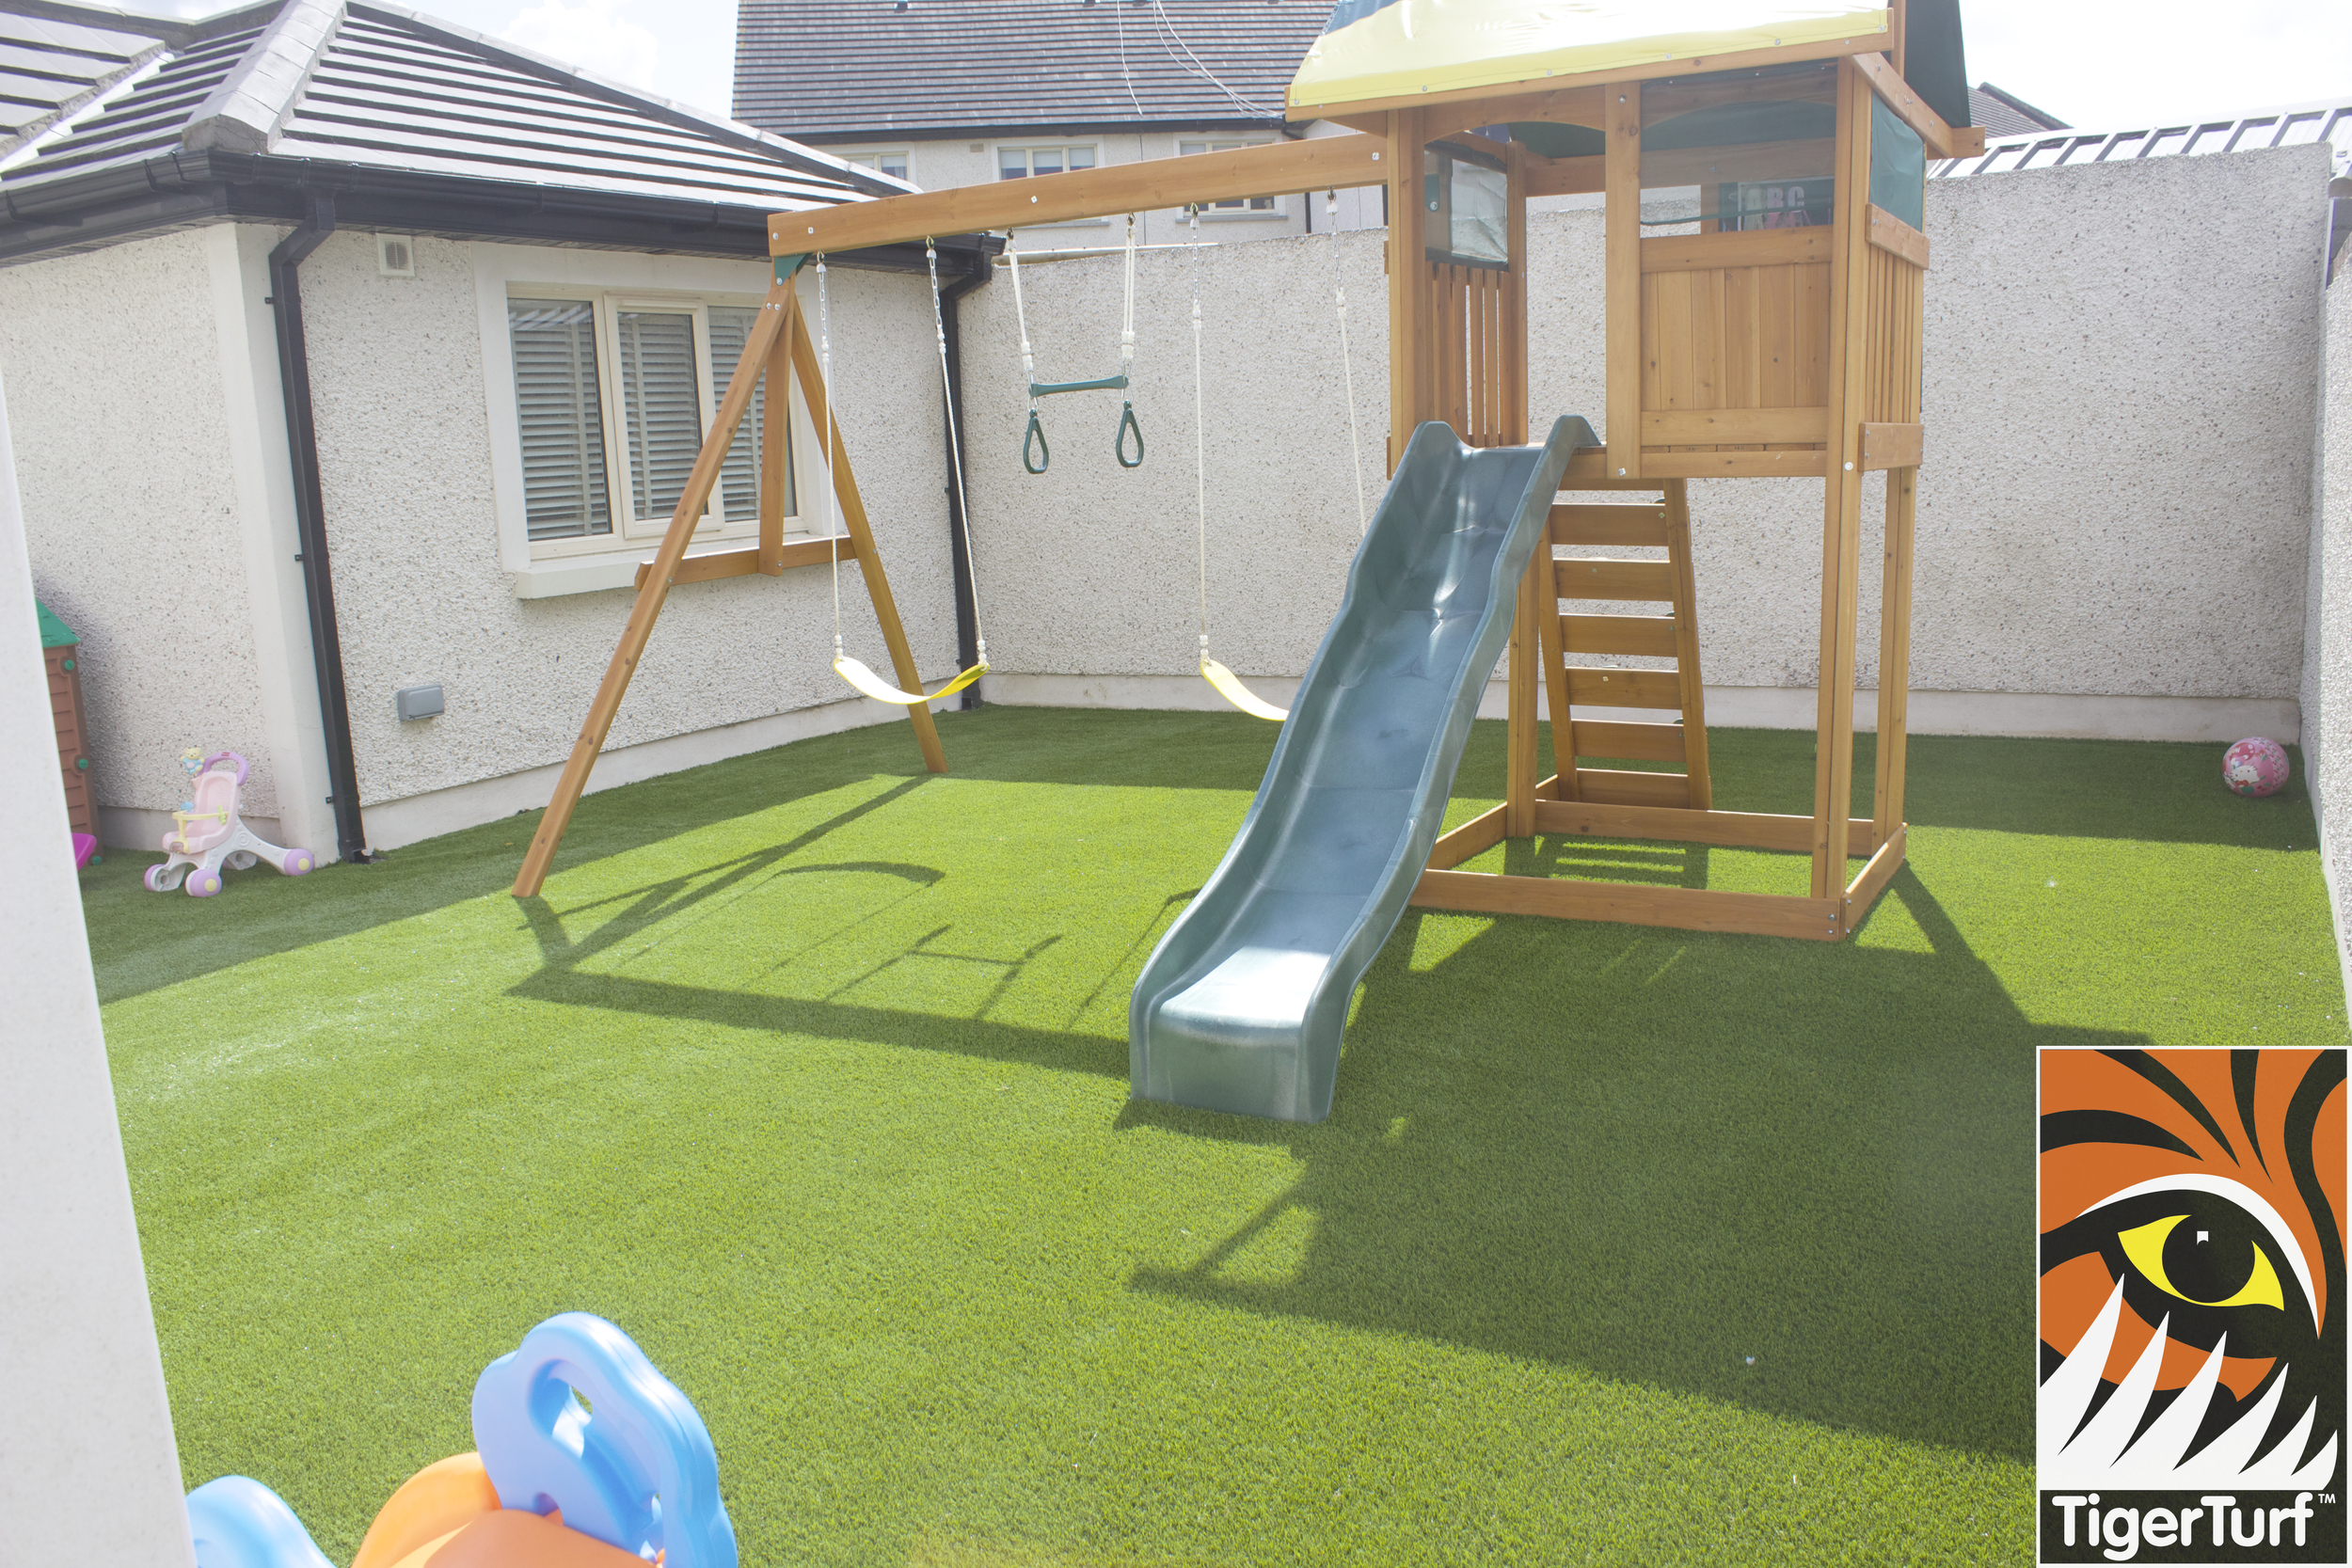 TigerTurf finesse family lawn